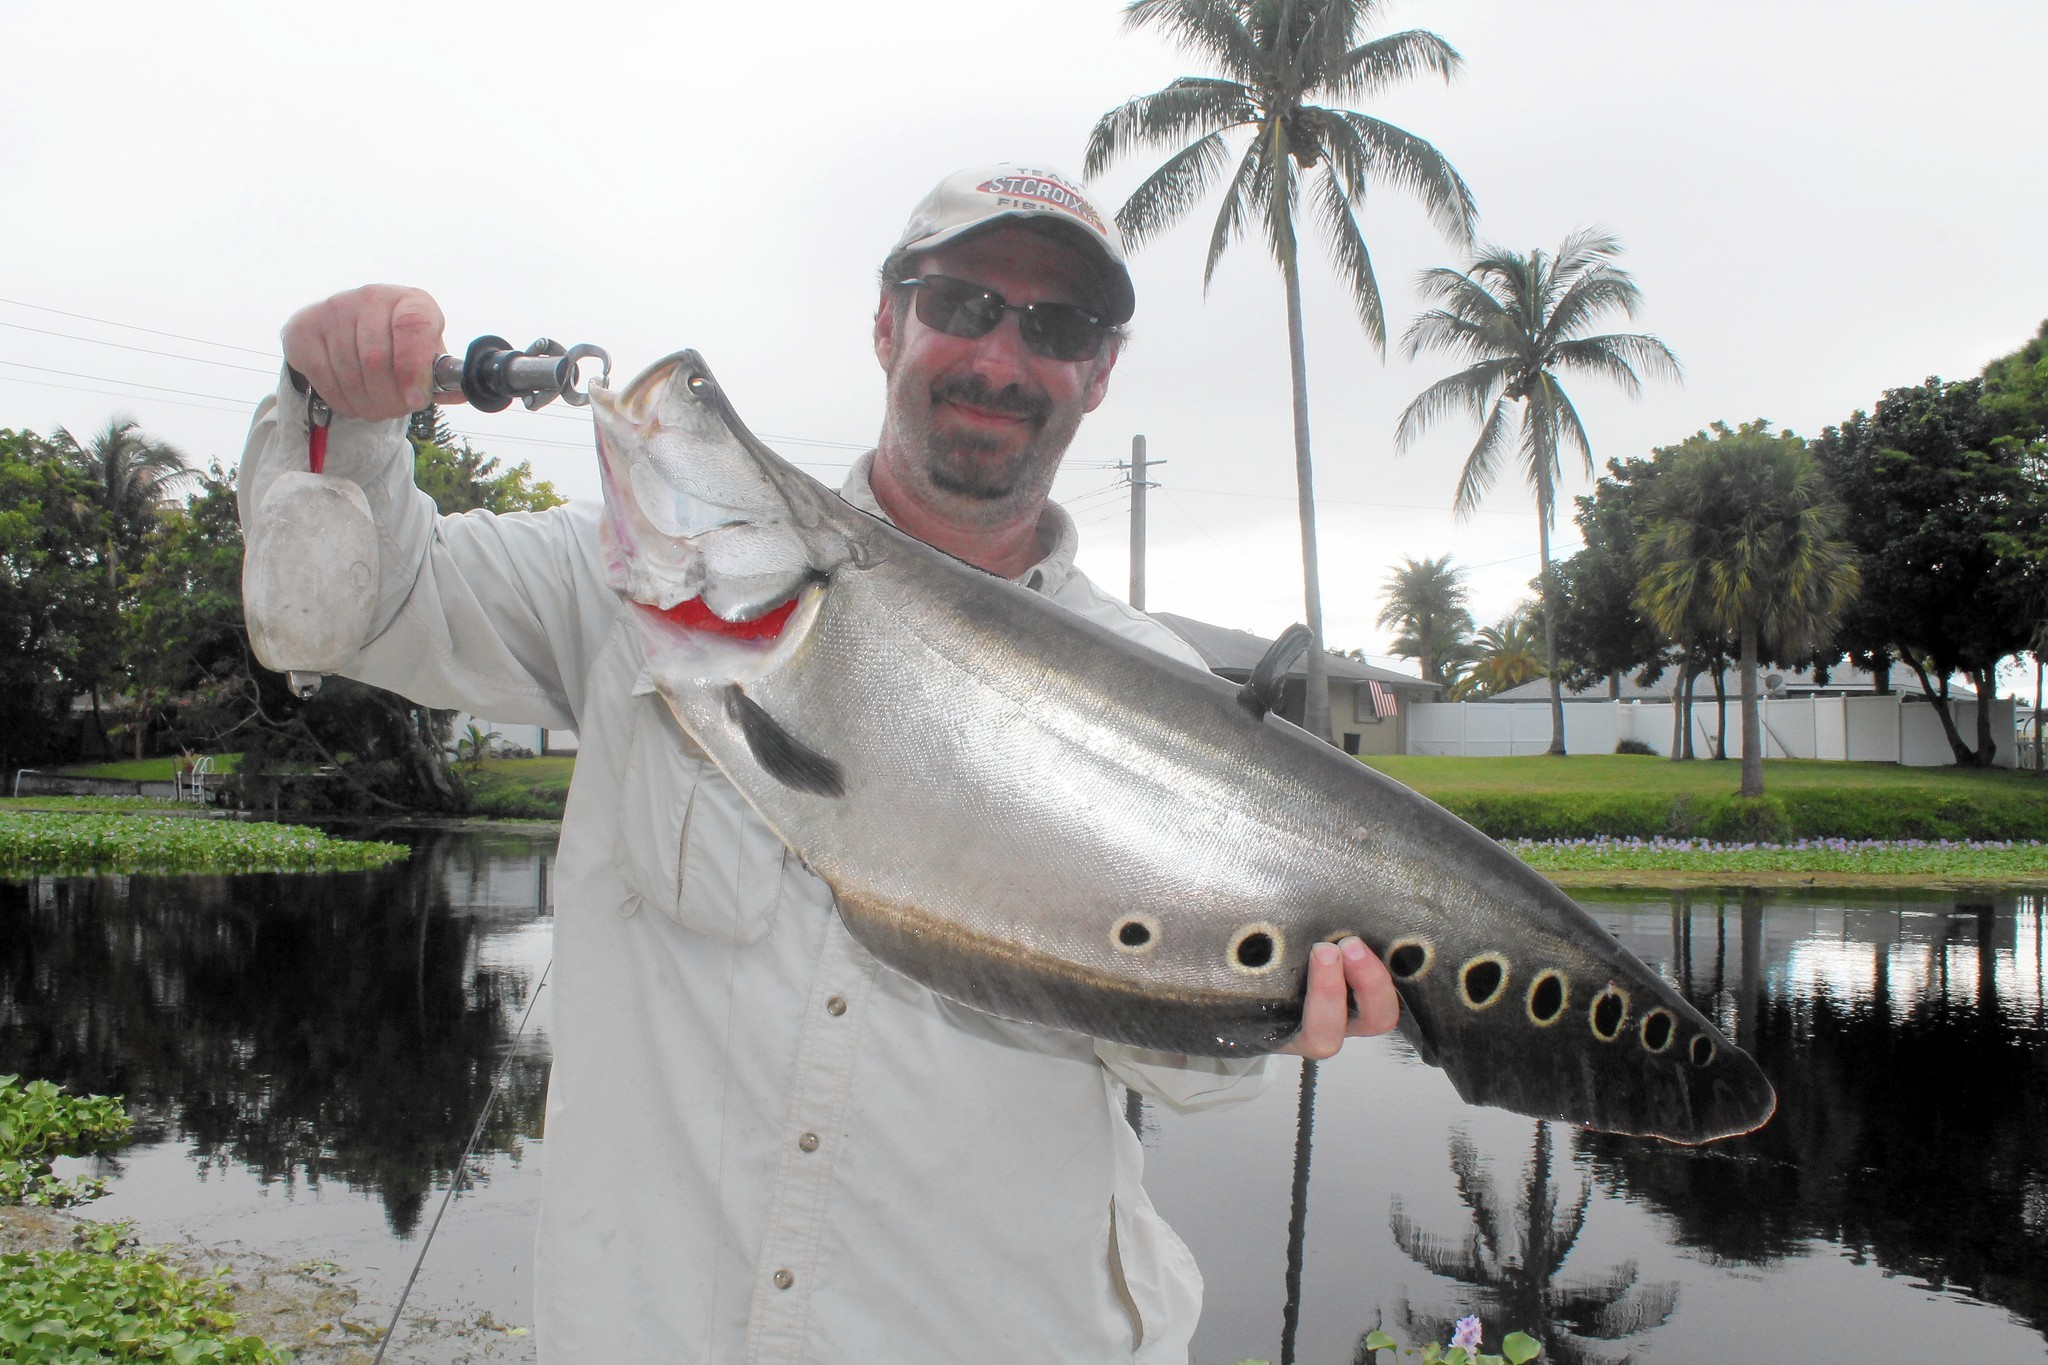 South florida fishing report clown knifefish sun sentinel for South florida fishing